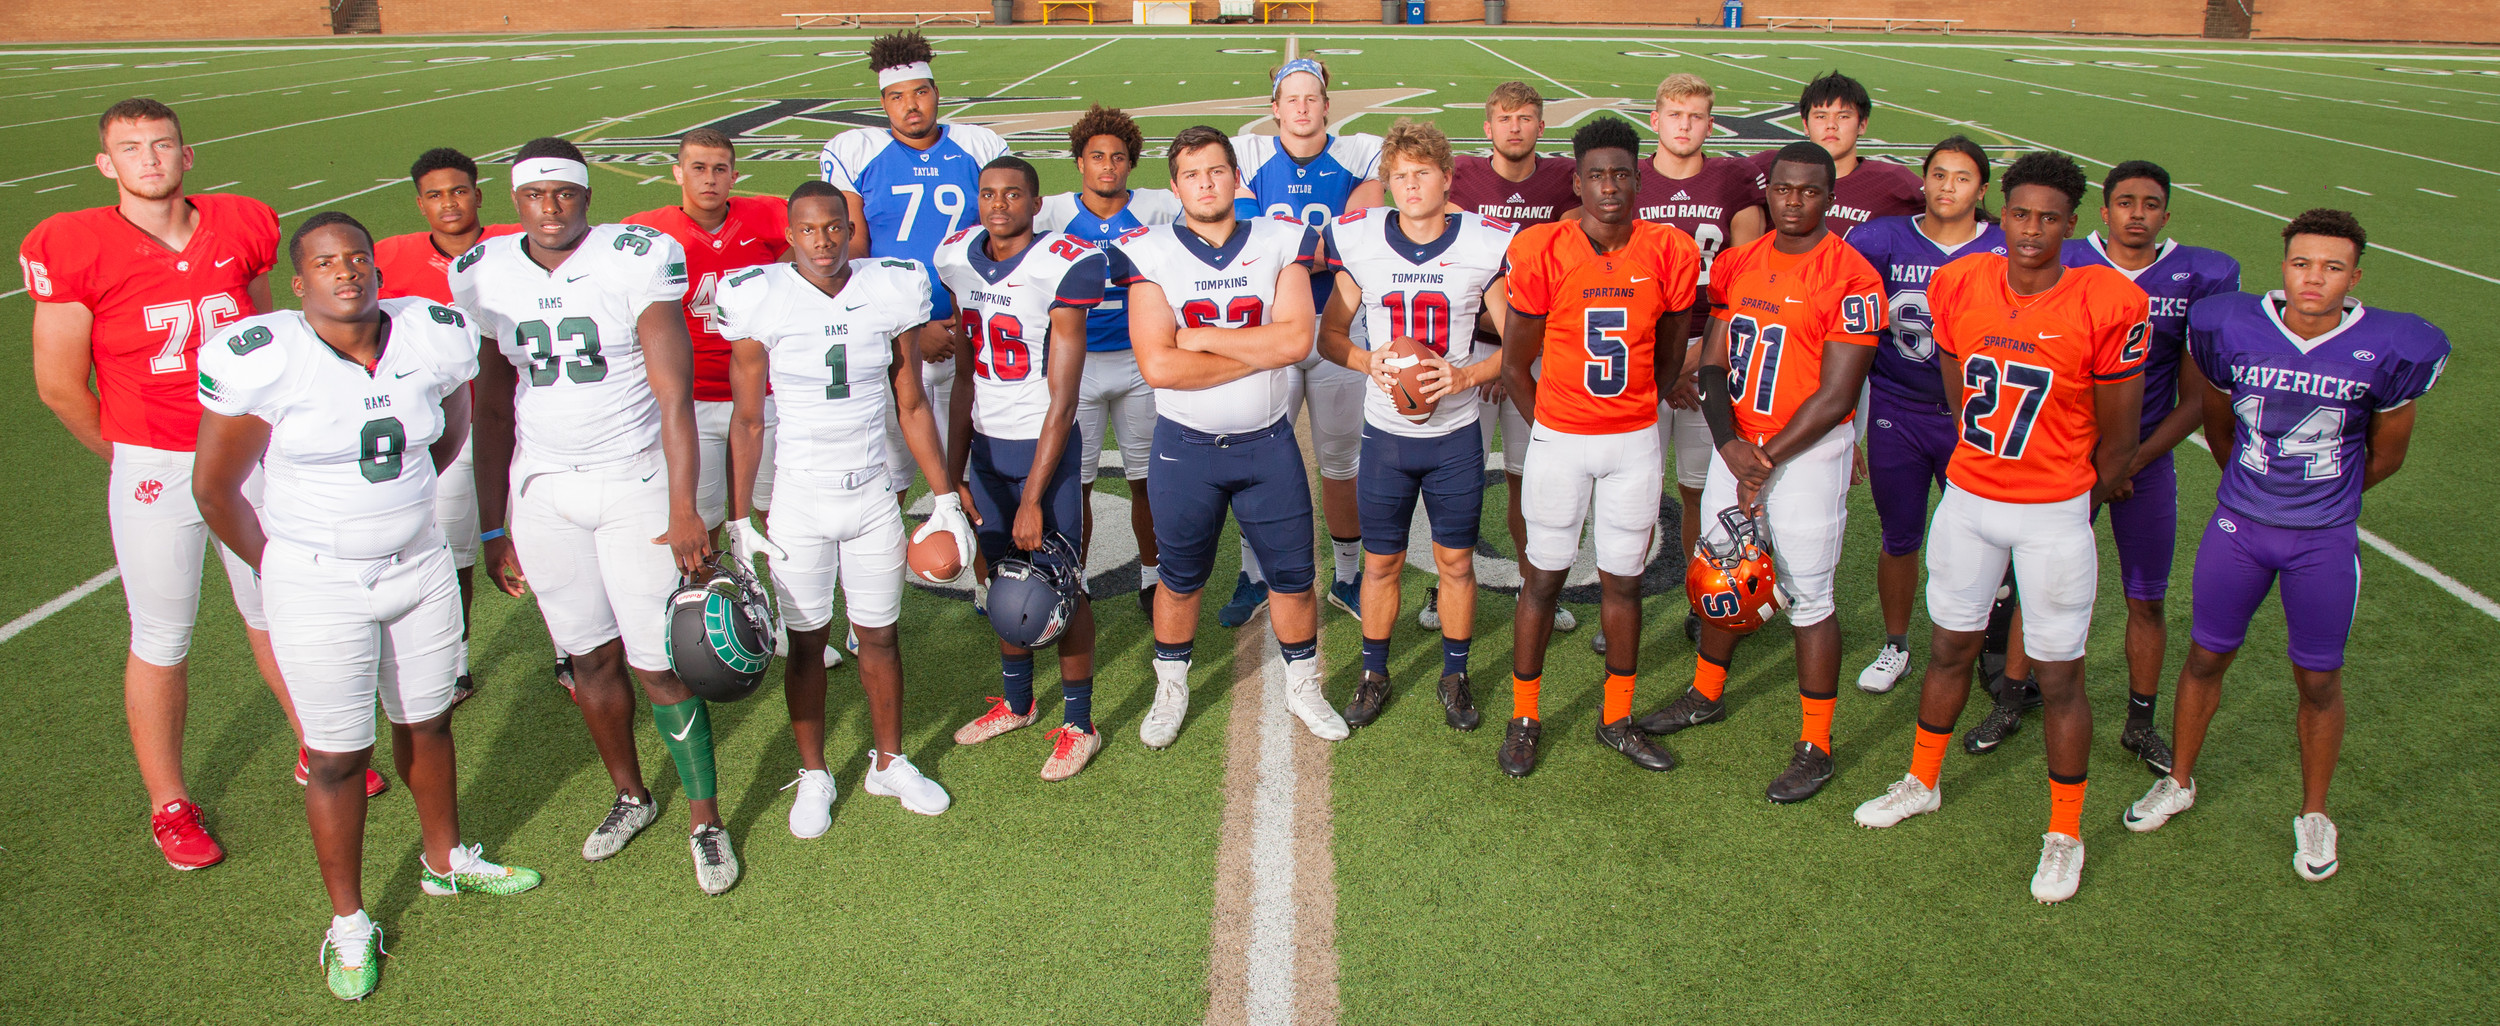 KATY FOOTBALL PICKS: Who to Watch this Football Season